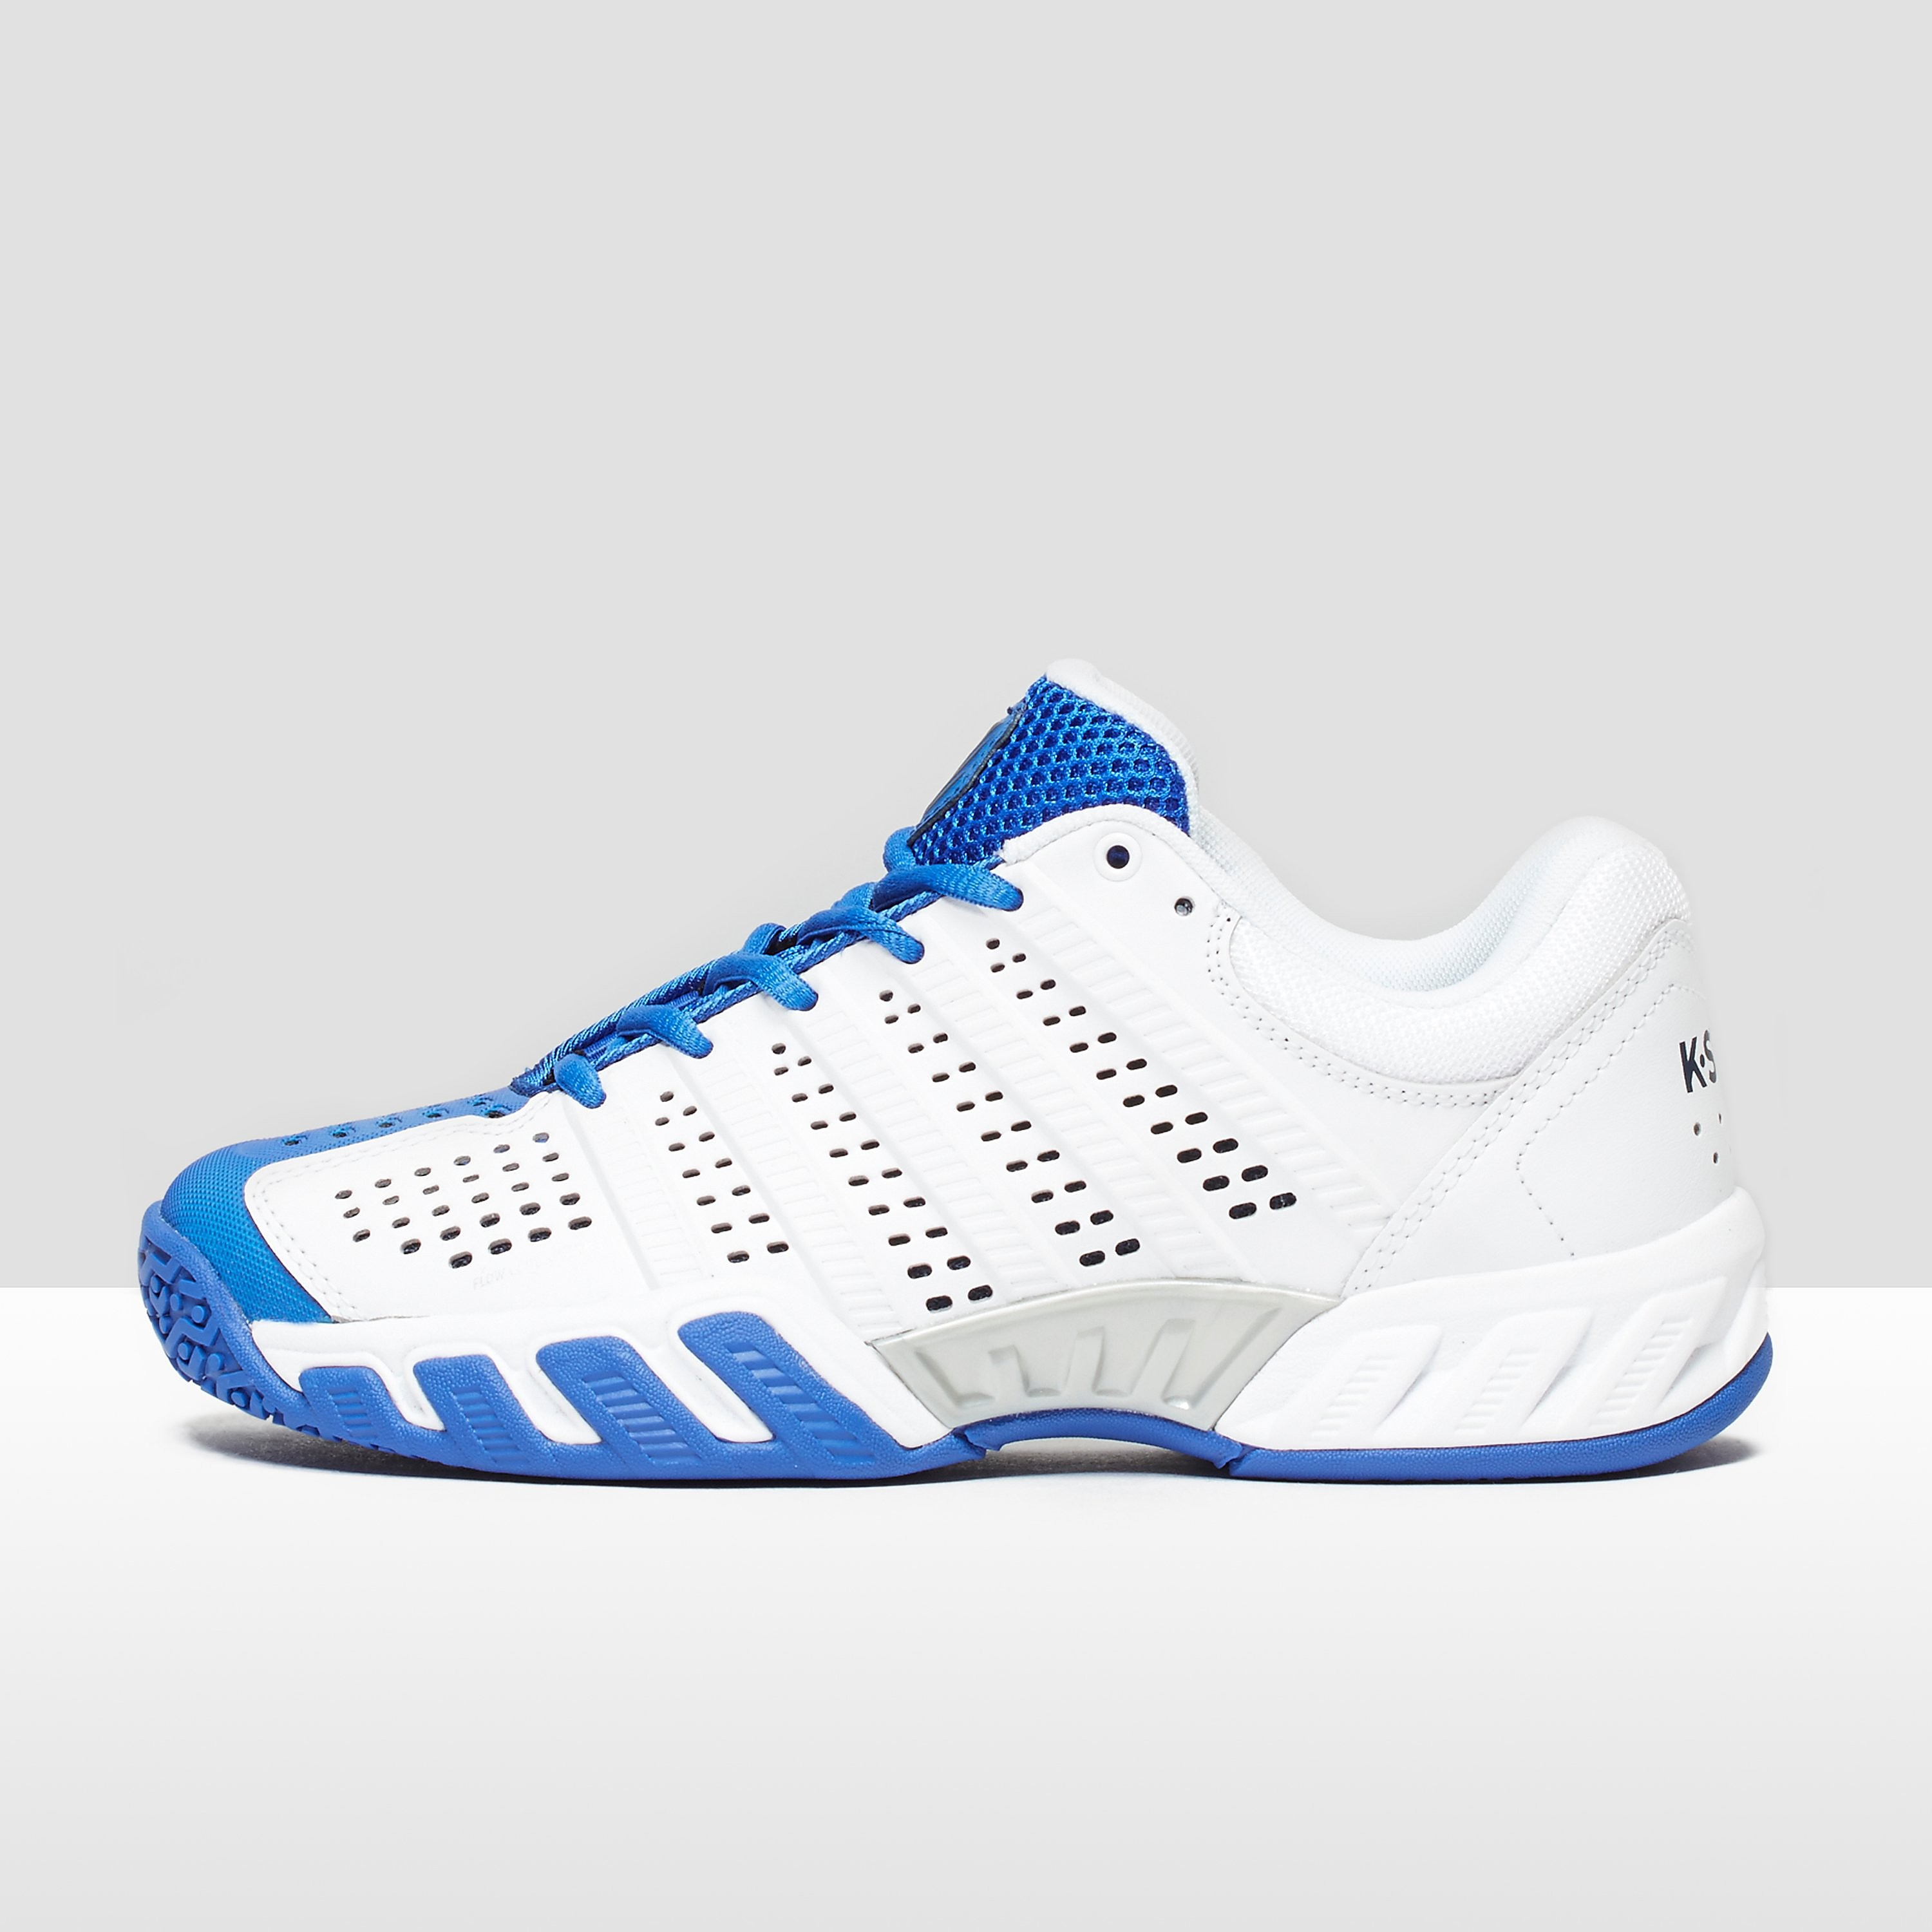 K-Swiss Bigshot light 2.5 omni junior tennis shoes